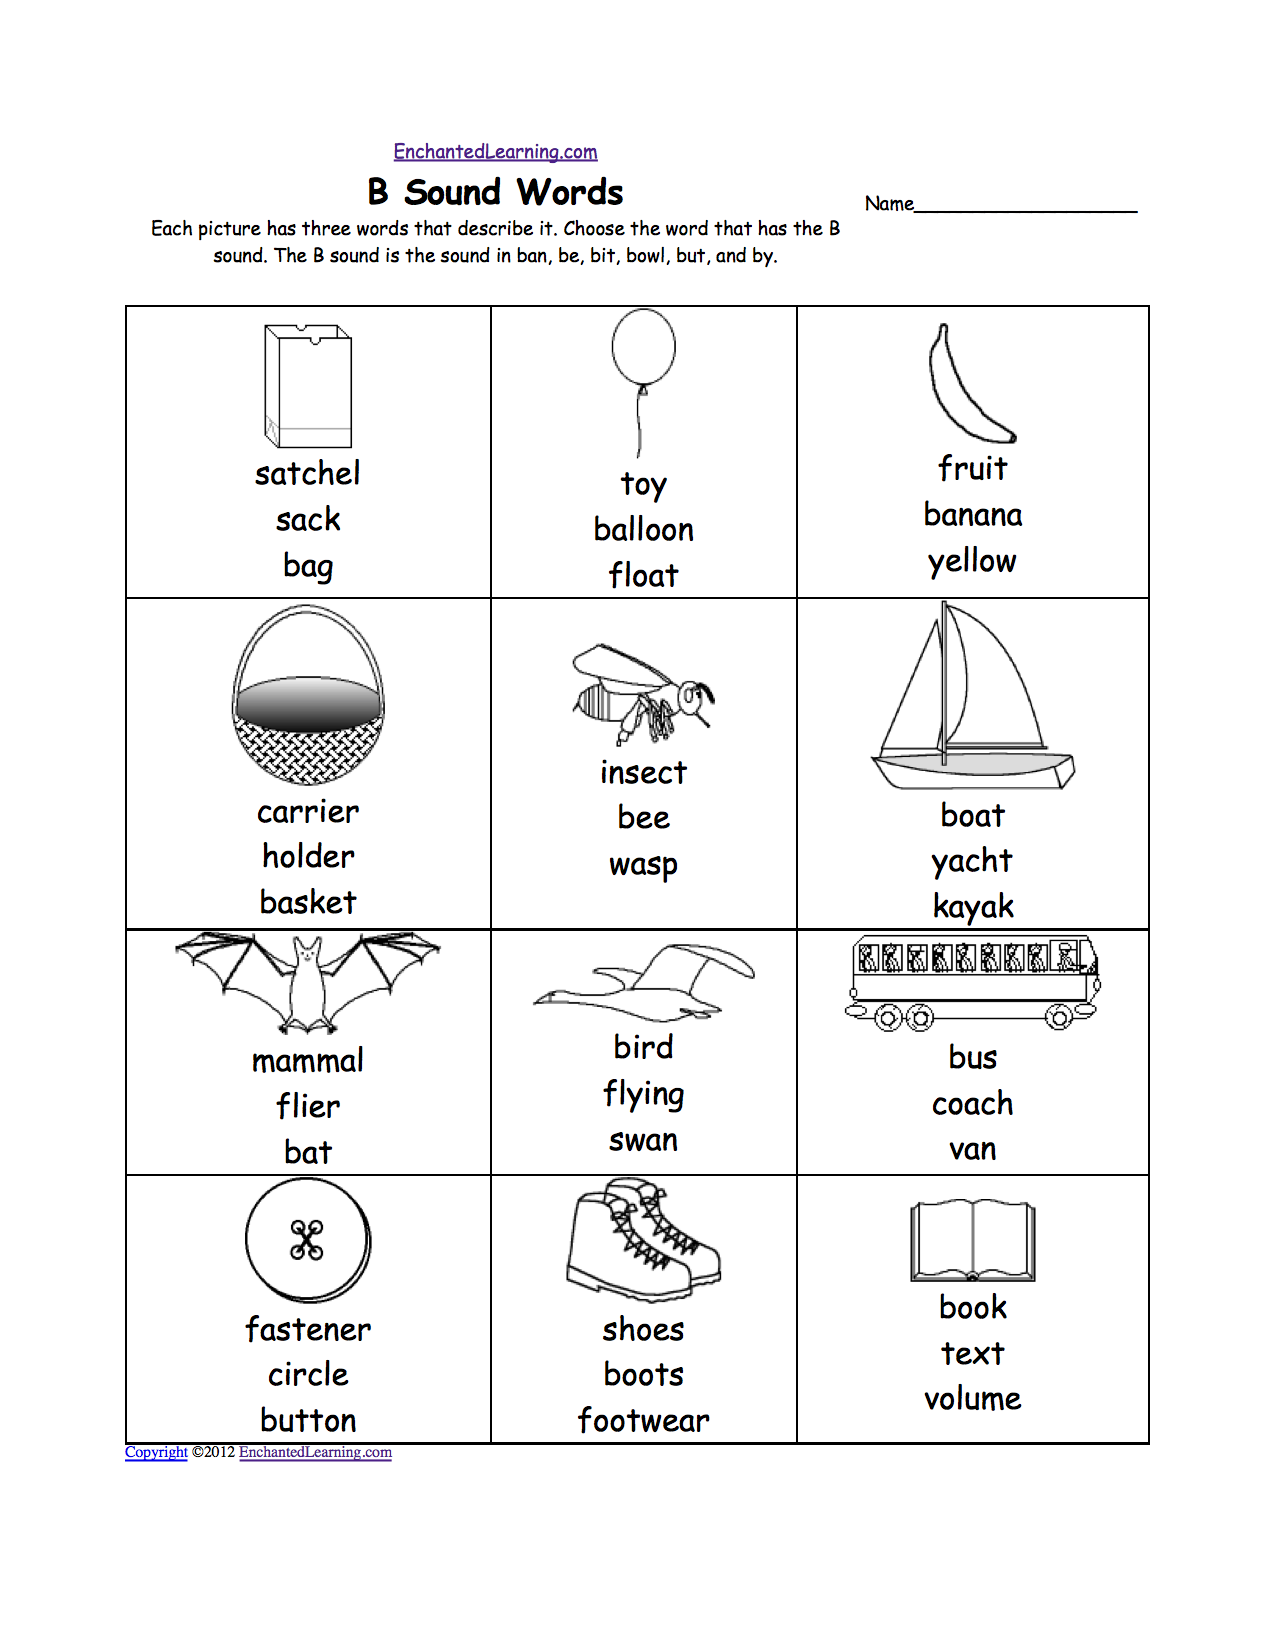 Aldiablosus  Fascinating Phonics Worksheets Multiple Choice Worksheets To Print  With Goodlooking Quotbquot Sound Phonics Worksheet Multiple Choice Each Picture Has Three Words That Describe It Choose The Word That Has A Quotbquot Sound The Quotbquot Sound Is The Sound  With Nice Worksheet With Answers Also Schwa Worksheets In Addition Rotation Of Shapes Worksheet And Multiplying And Dividing Rational Expressions Worksheet Algebra  As Well As  Digit Subtraction Worksheets Additionally Super Kids Math Worksheets From Enchantedlearningcom With Aldiablosus  Goodlooking Phonics Worksheets Multiple Choice Worksheets To Print  With Nice Quotbquot Sound Phonics Worksheet Multiple Choice Each Picture Has Three Words That Describe It Choose The Word That Has A Quotbquot Sound The Quotbquot Sound Is The Sound  And Fascinating Worksheet With Answers Also Schwa Worksheets In Addition Rotation Of Shapes Worksheet From Enchantedlearningcom